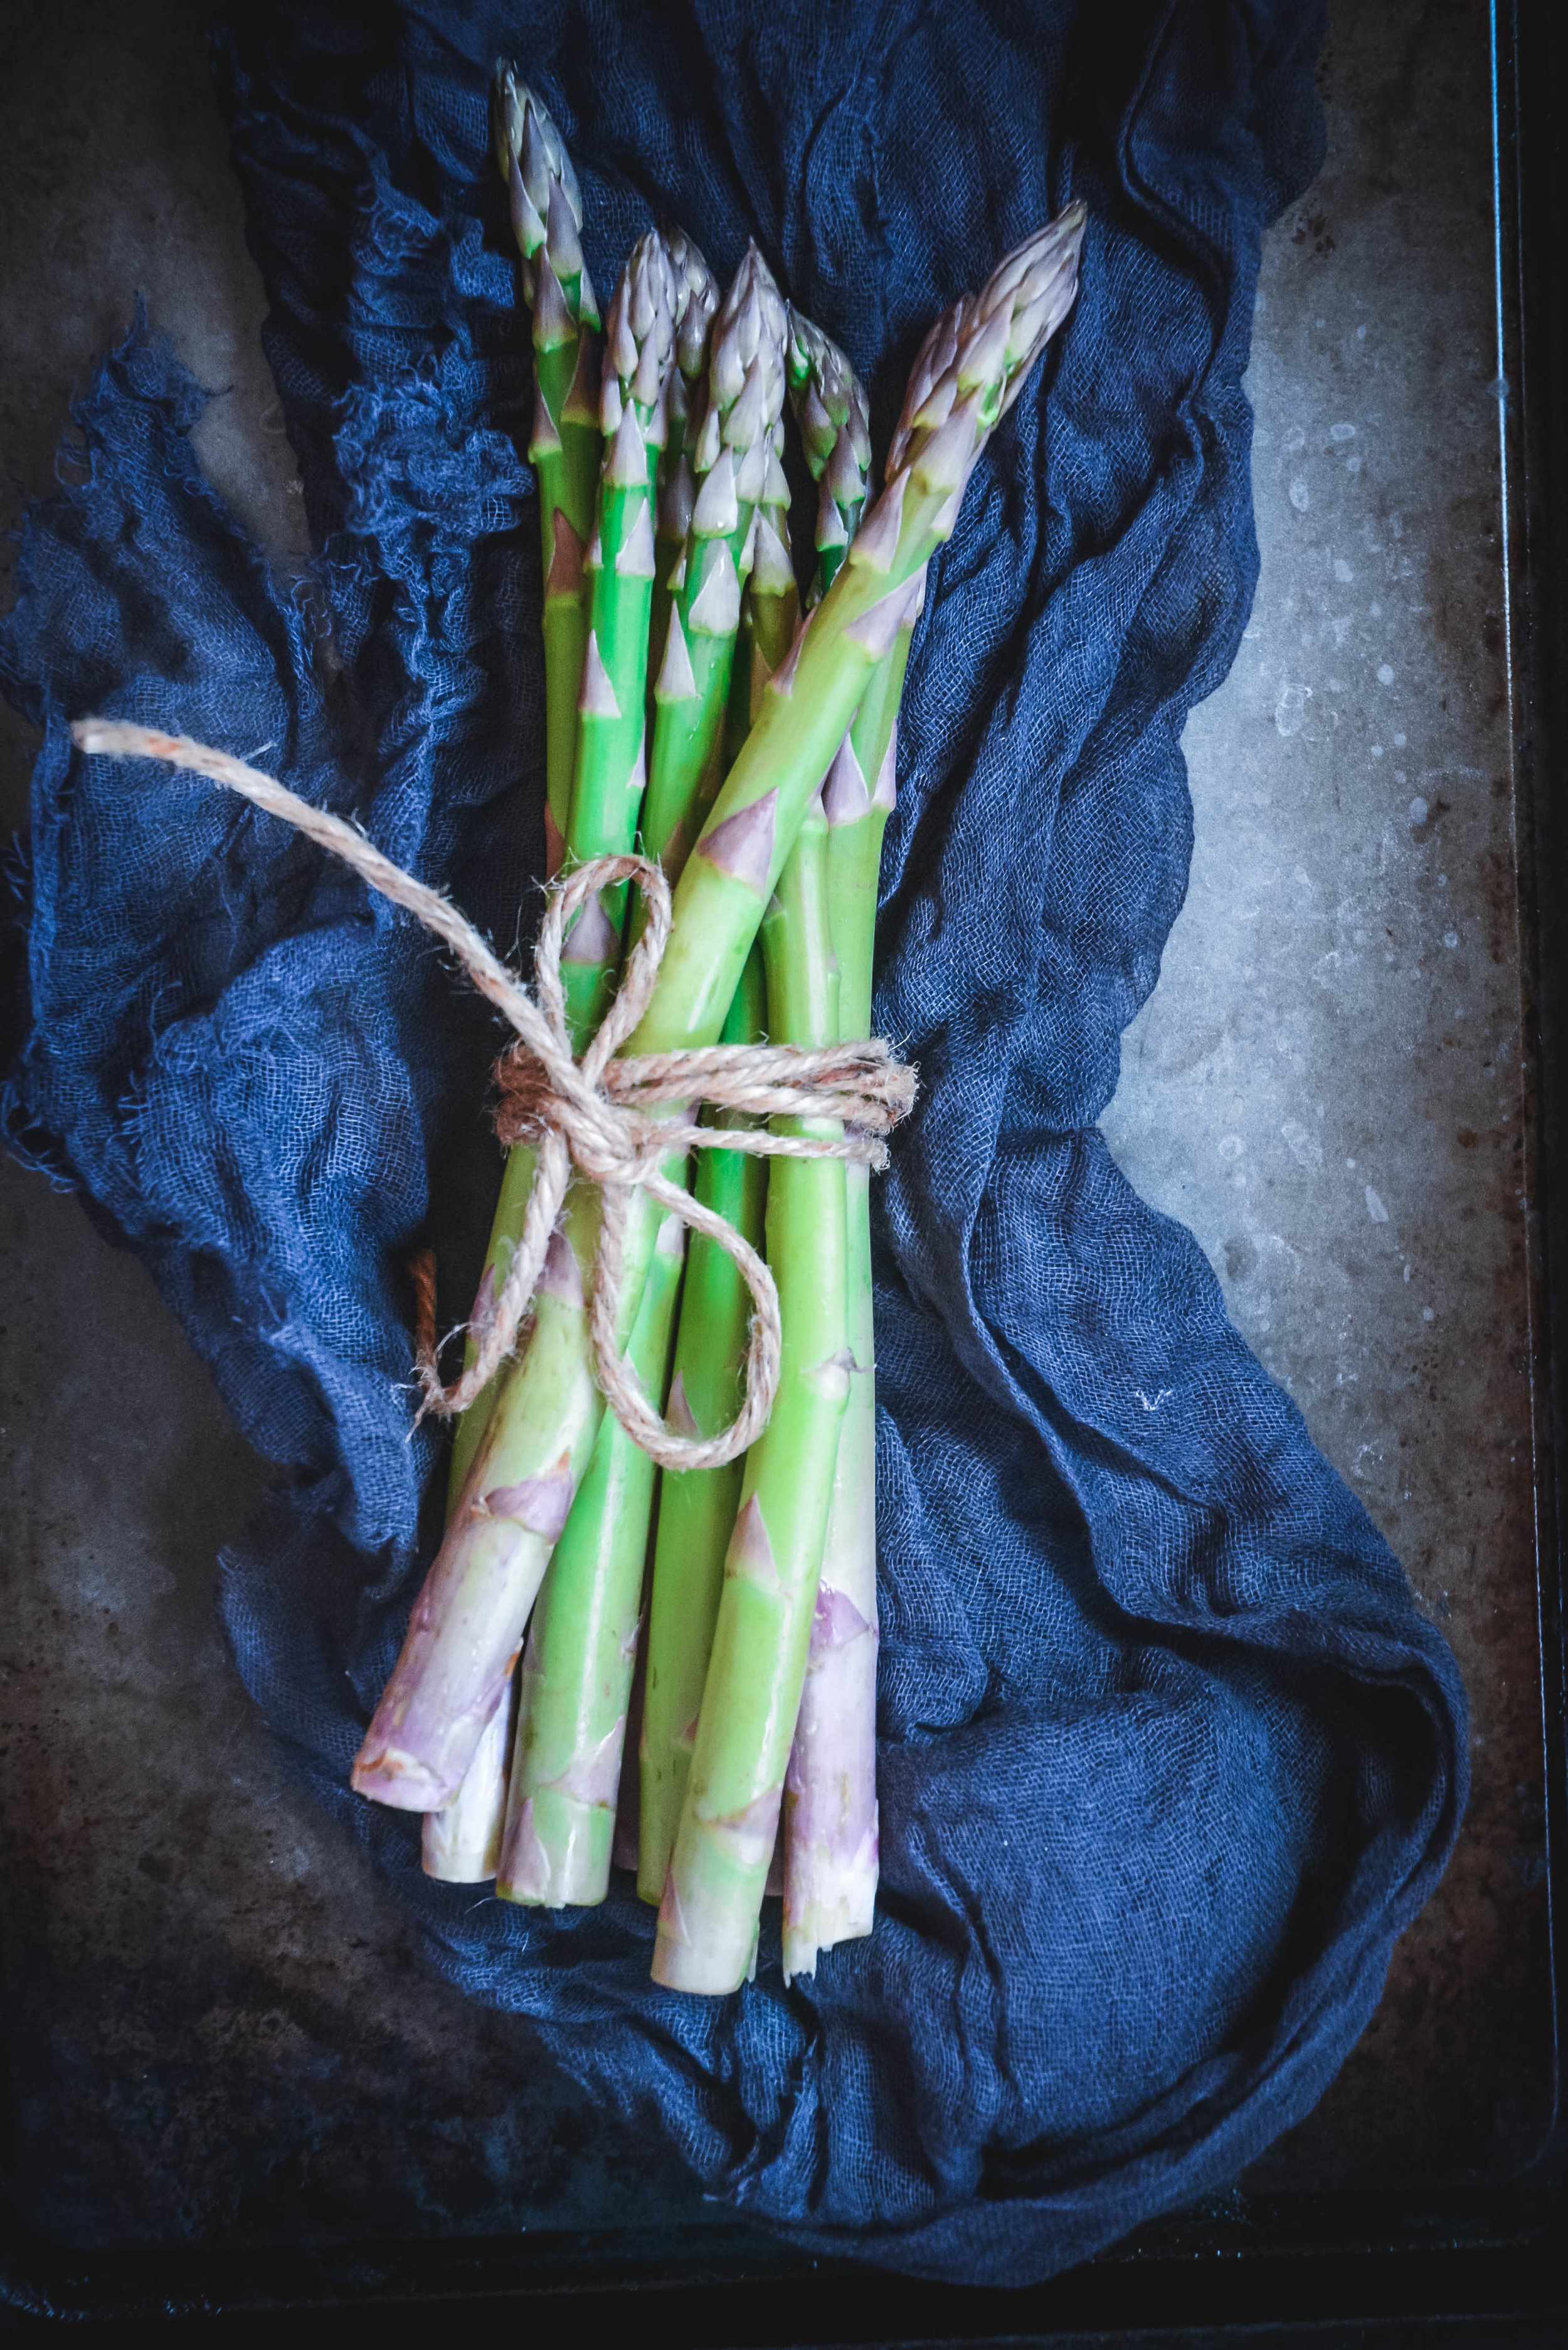 Asparagus on blue napkin tied with string